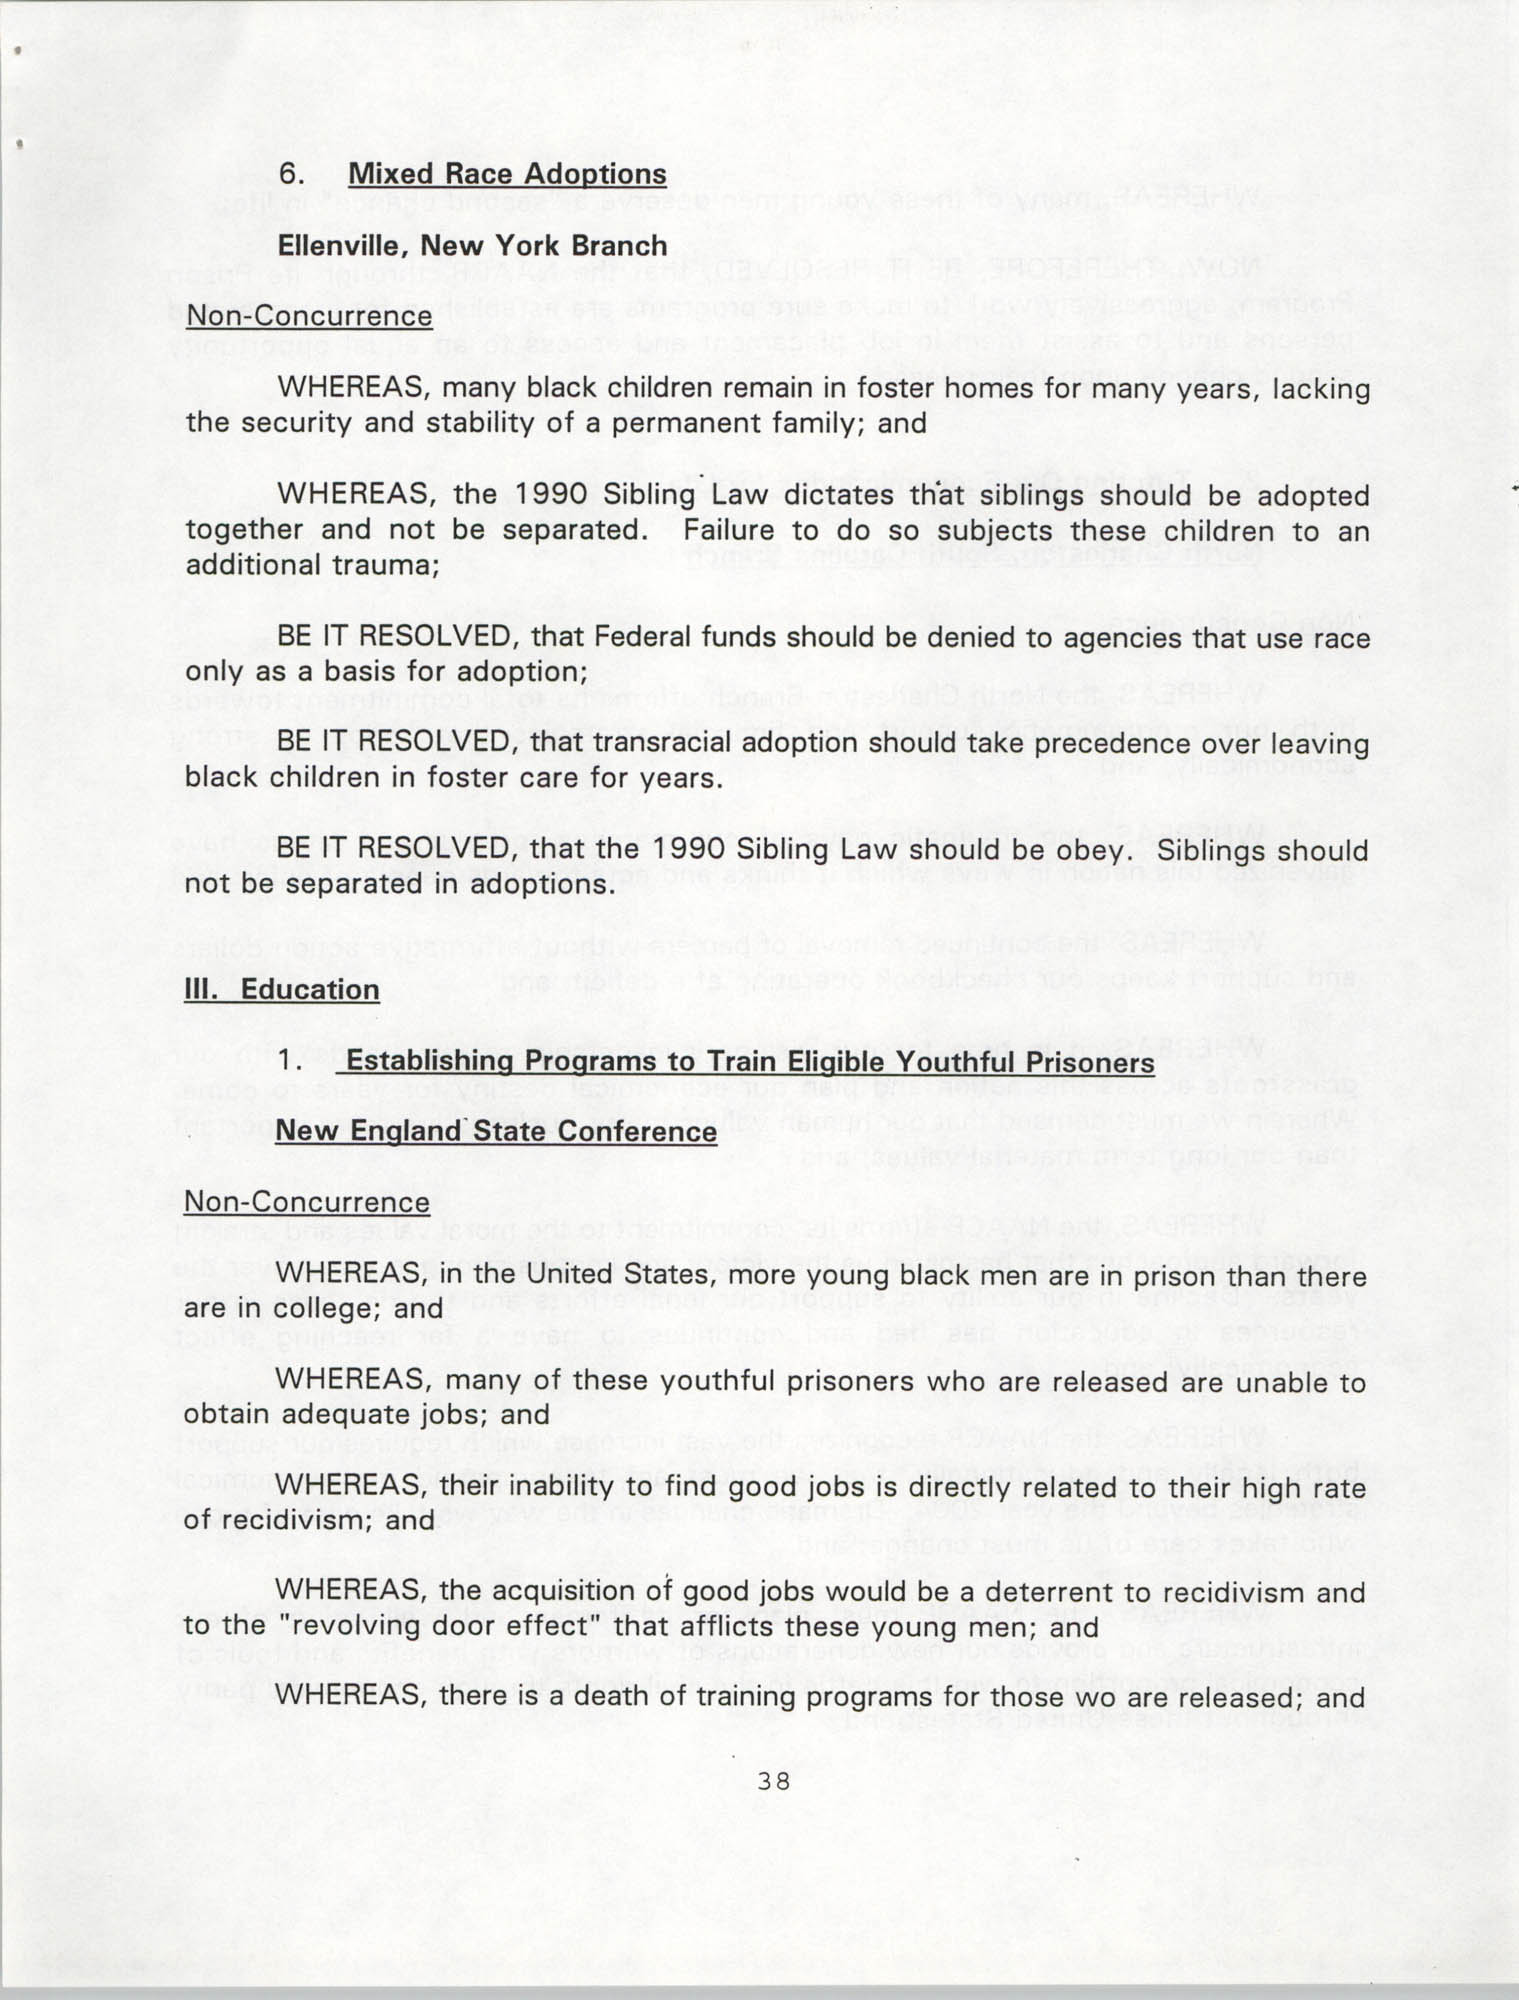 Resolutions Submitted Under Article X, Section 2 of the Constitution of the NAACP, 1994, Page 38